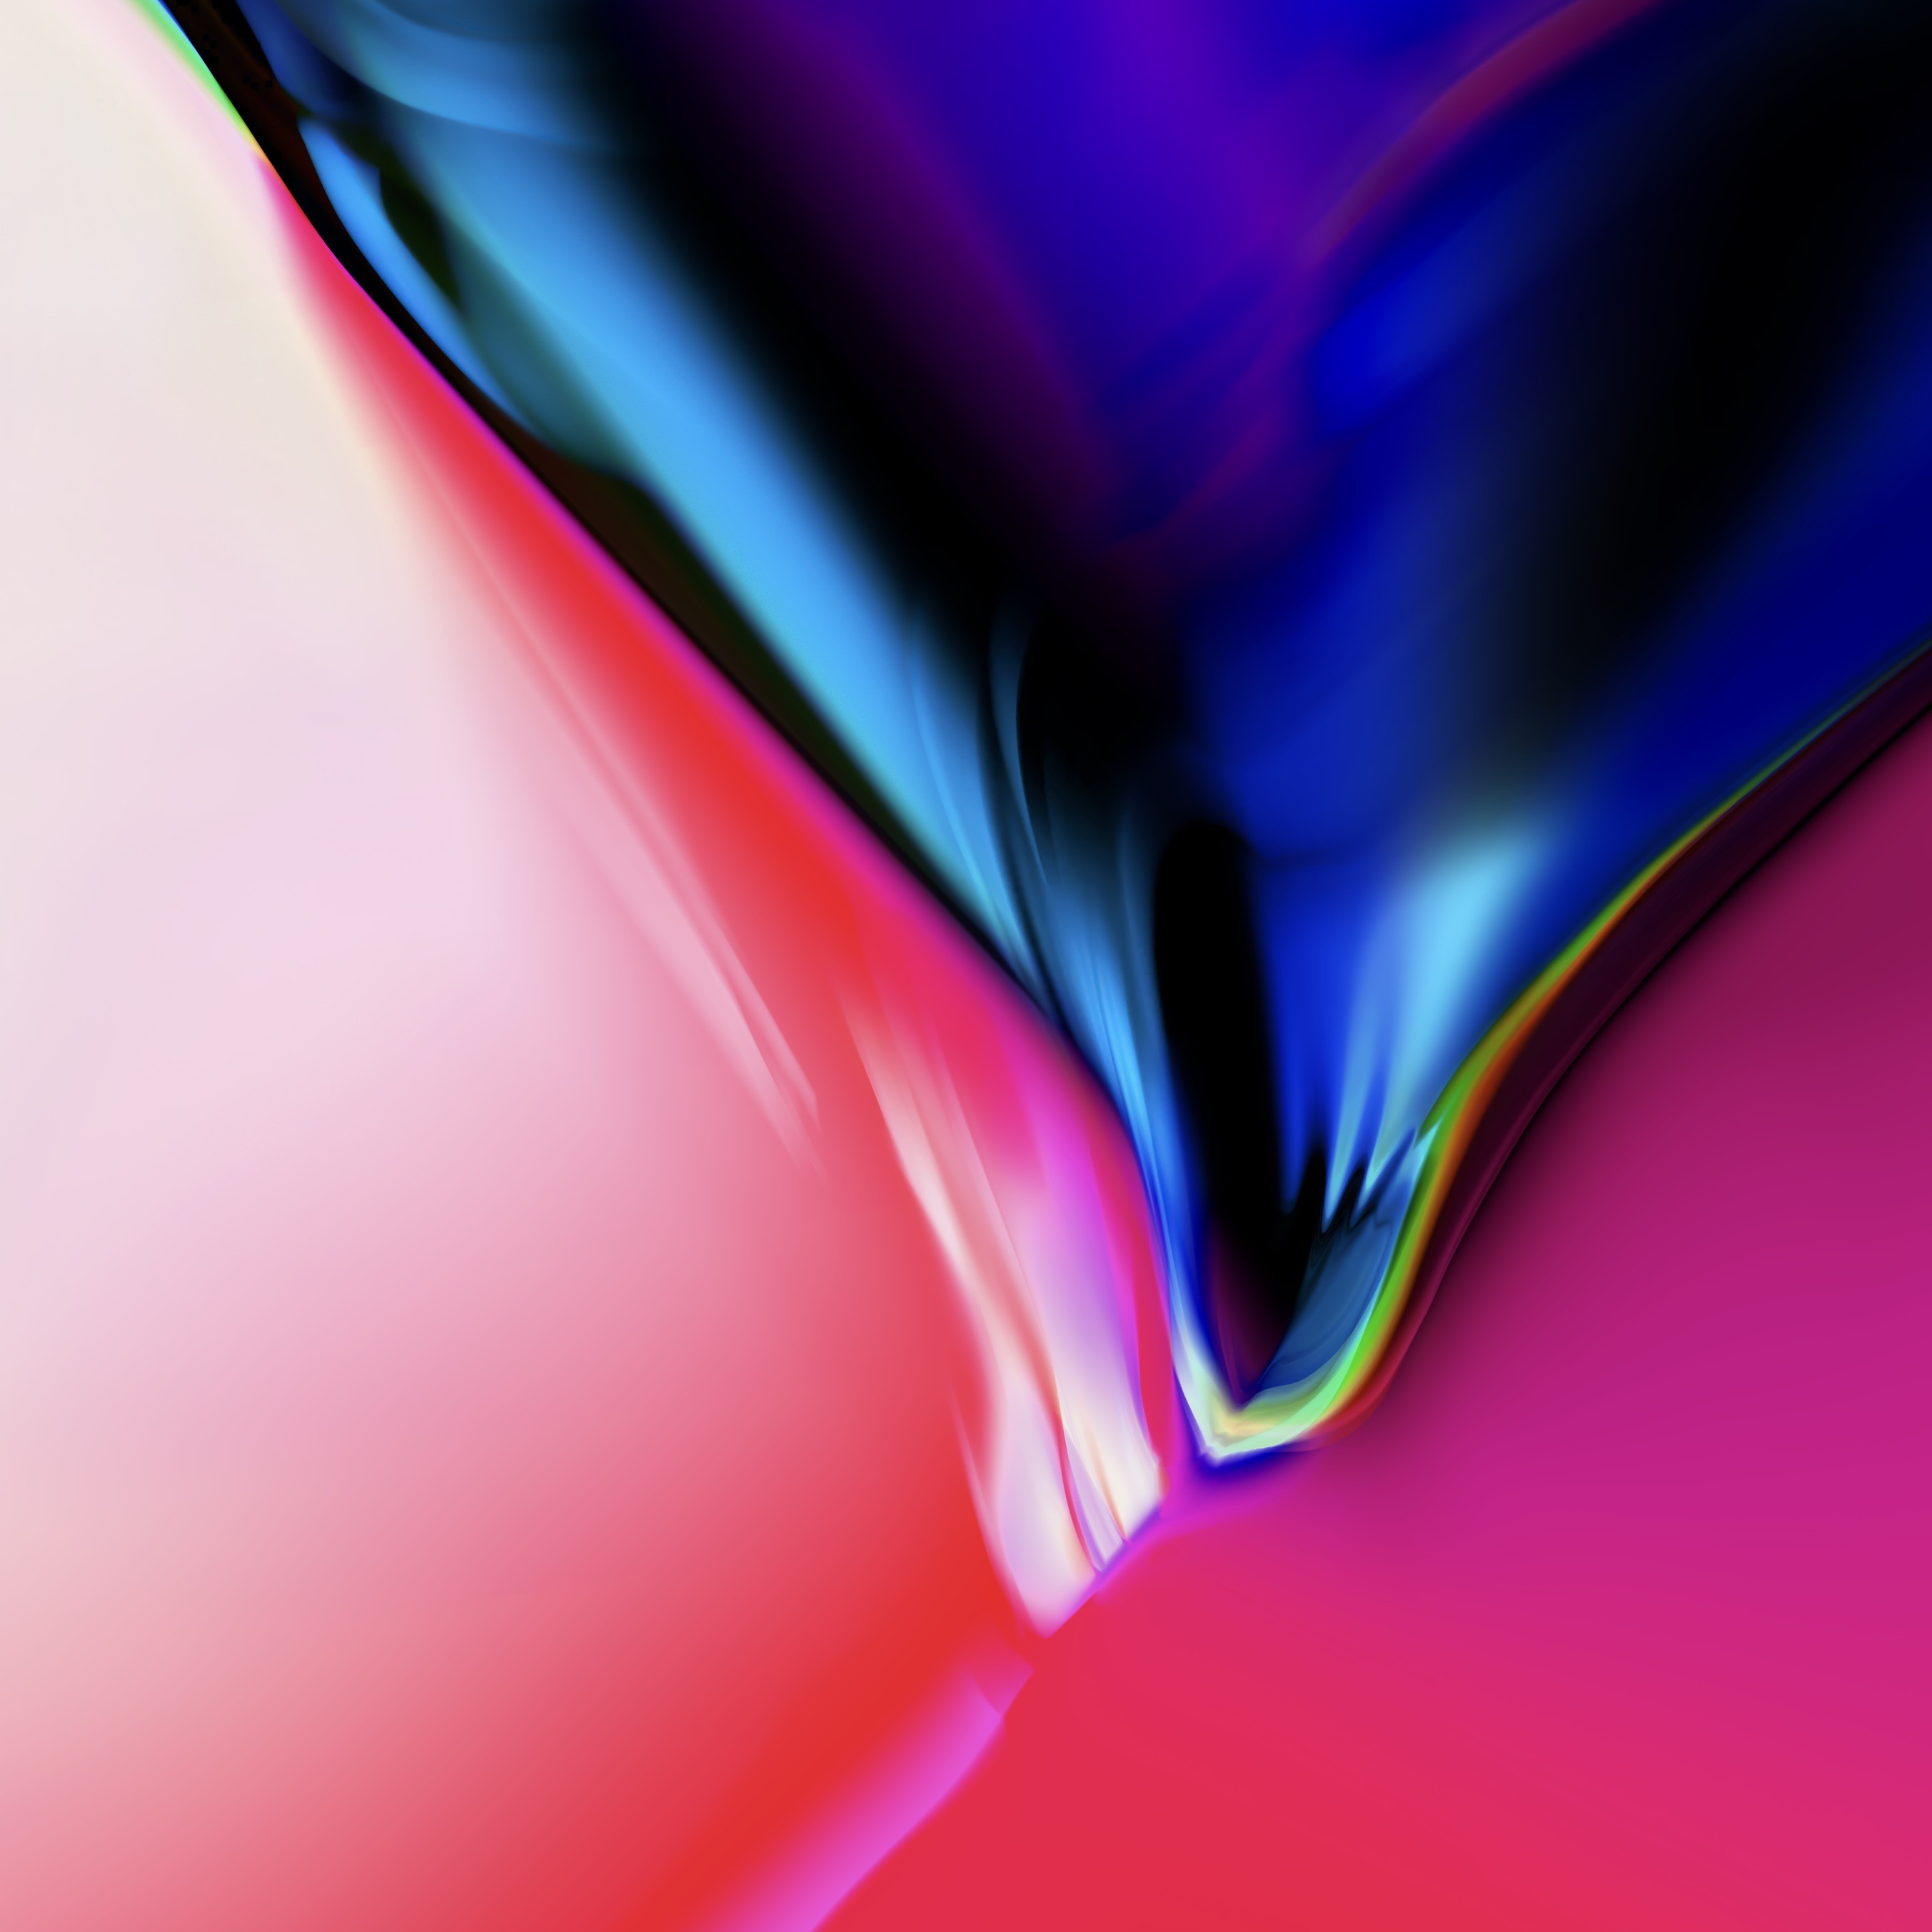 Amazing Wallpaper Mac Colorful - iphone-x-wallpaper-2706x2706-iphone-8-ios-11-colorful-hd-15708  Pic_49468.jpg